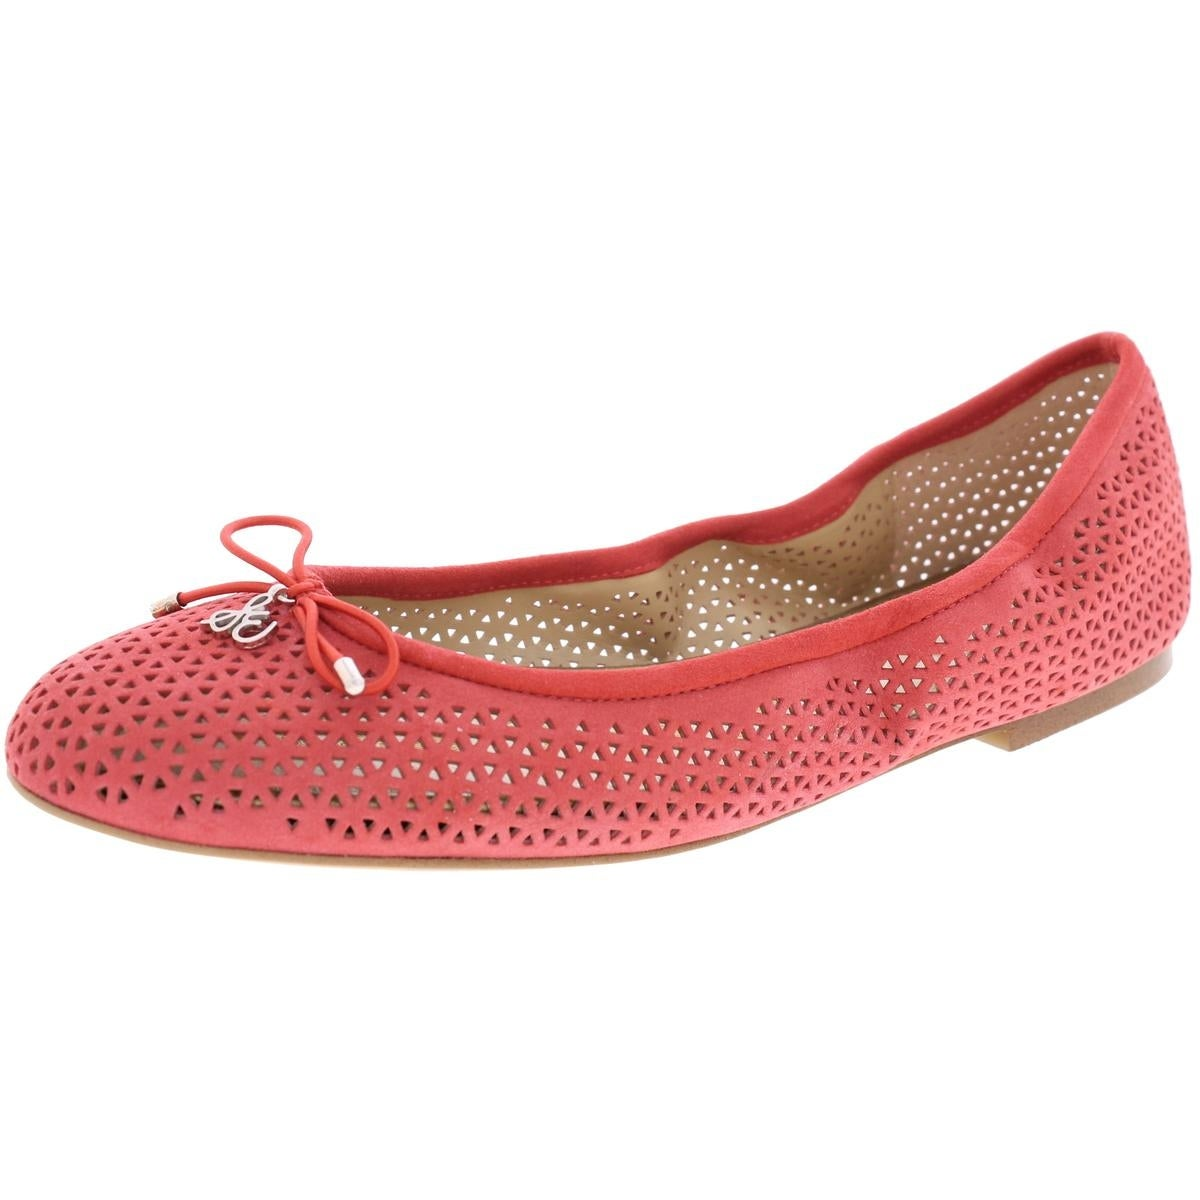 149f9015e Shop Sam Edelman Womens Felicia 2 Ballet Flats Perforated Suede - Free  Shipping Today - Overstock - 21593522